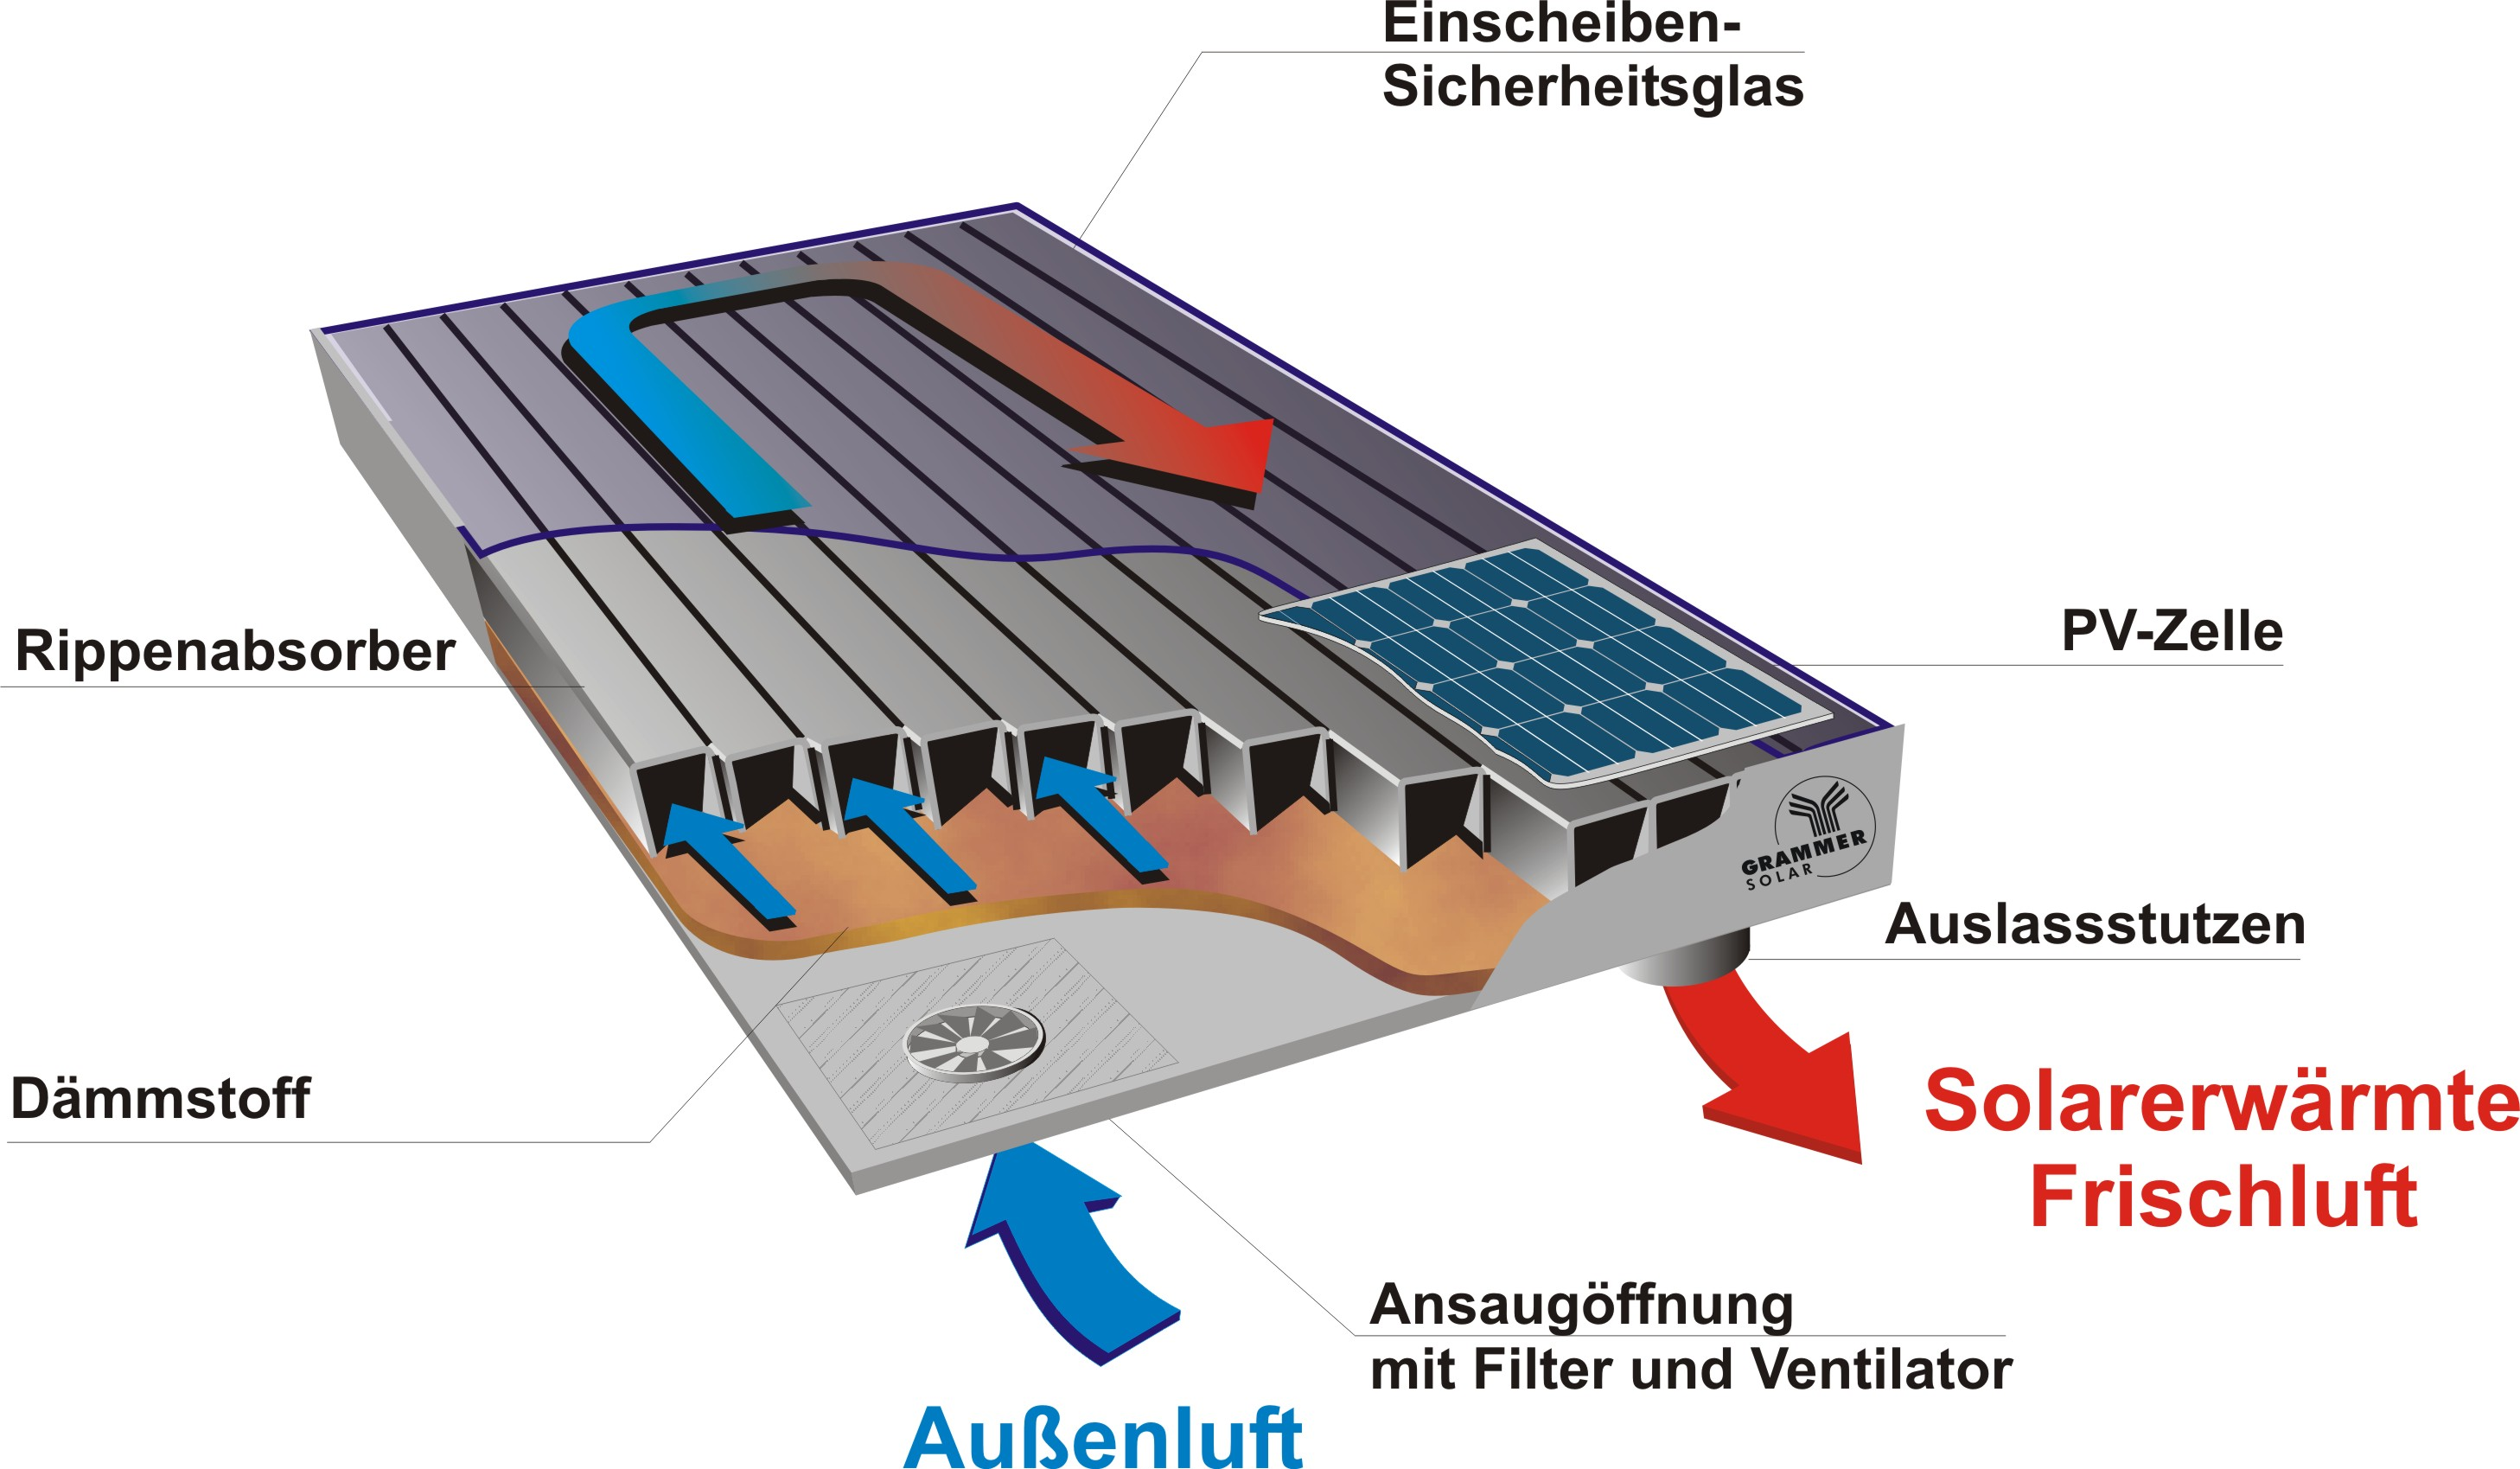 Heating with Solar energy